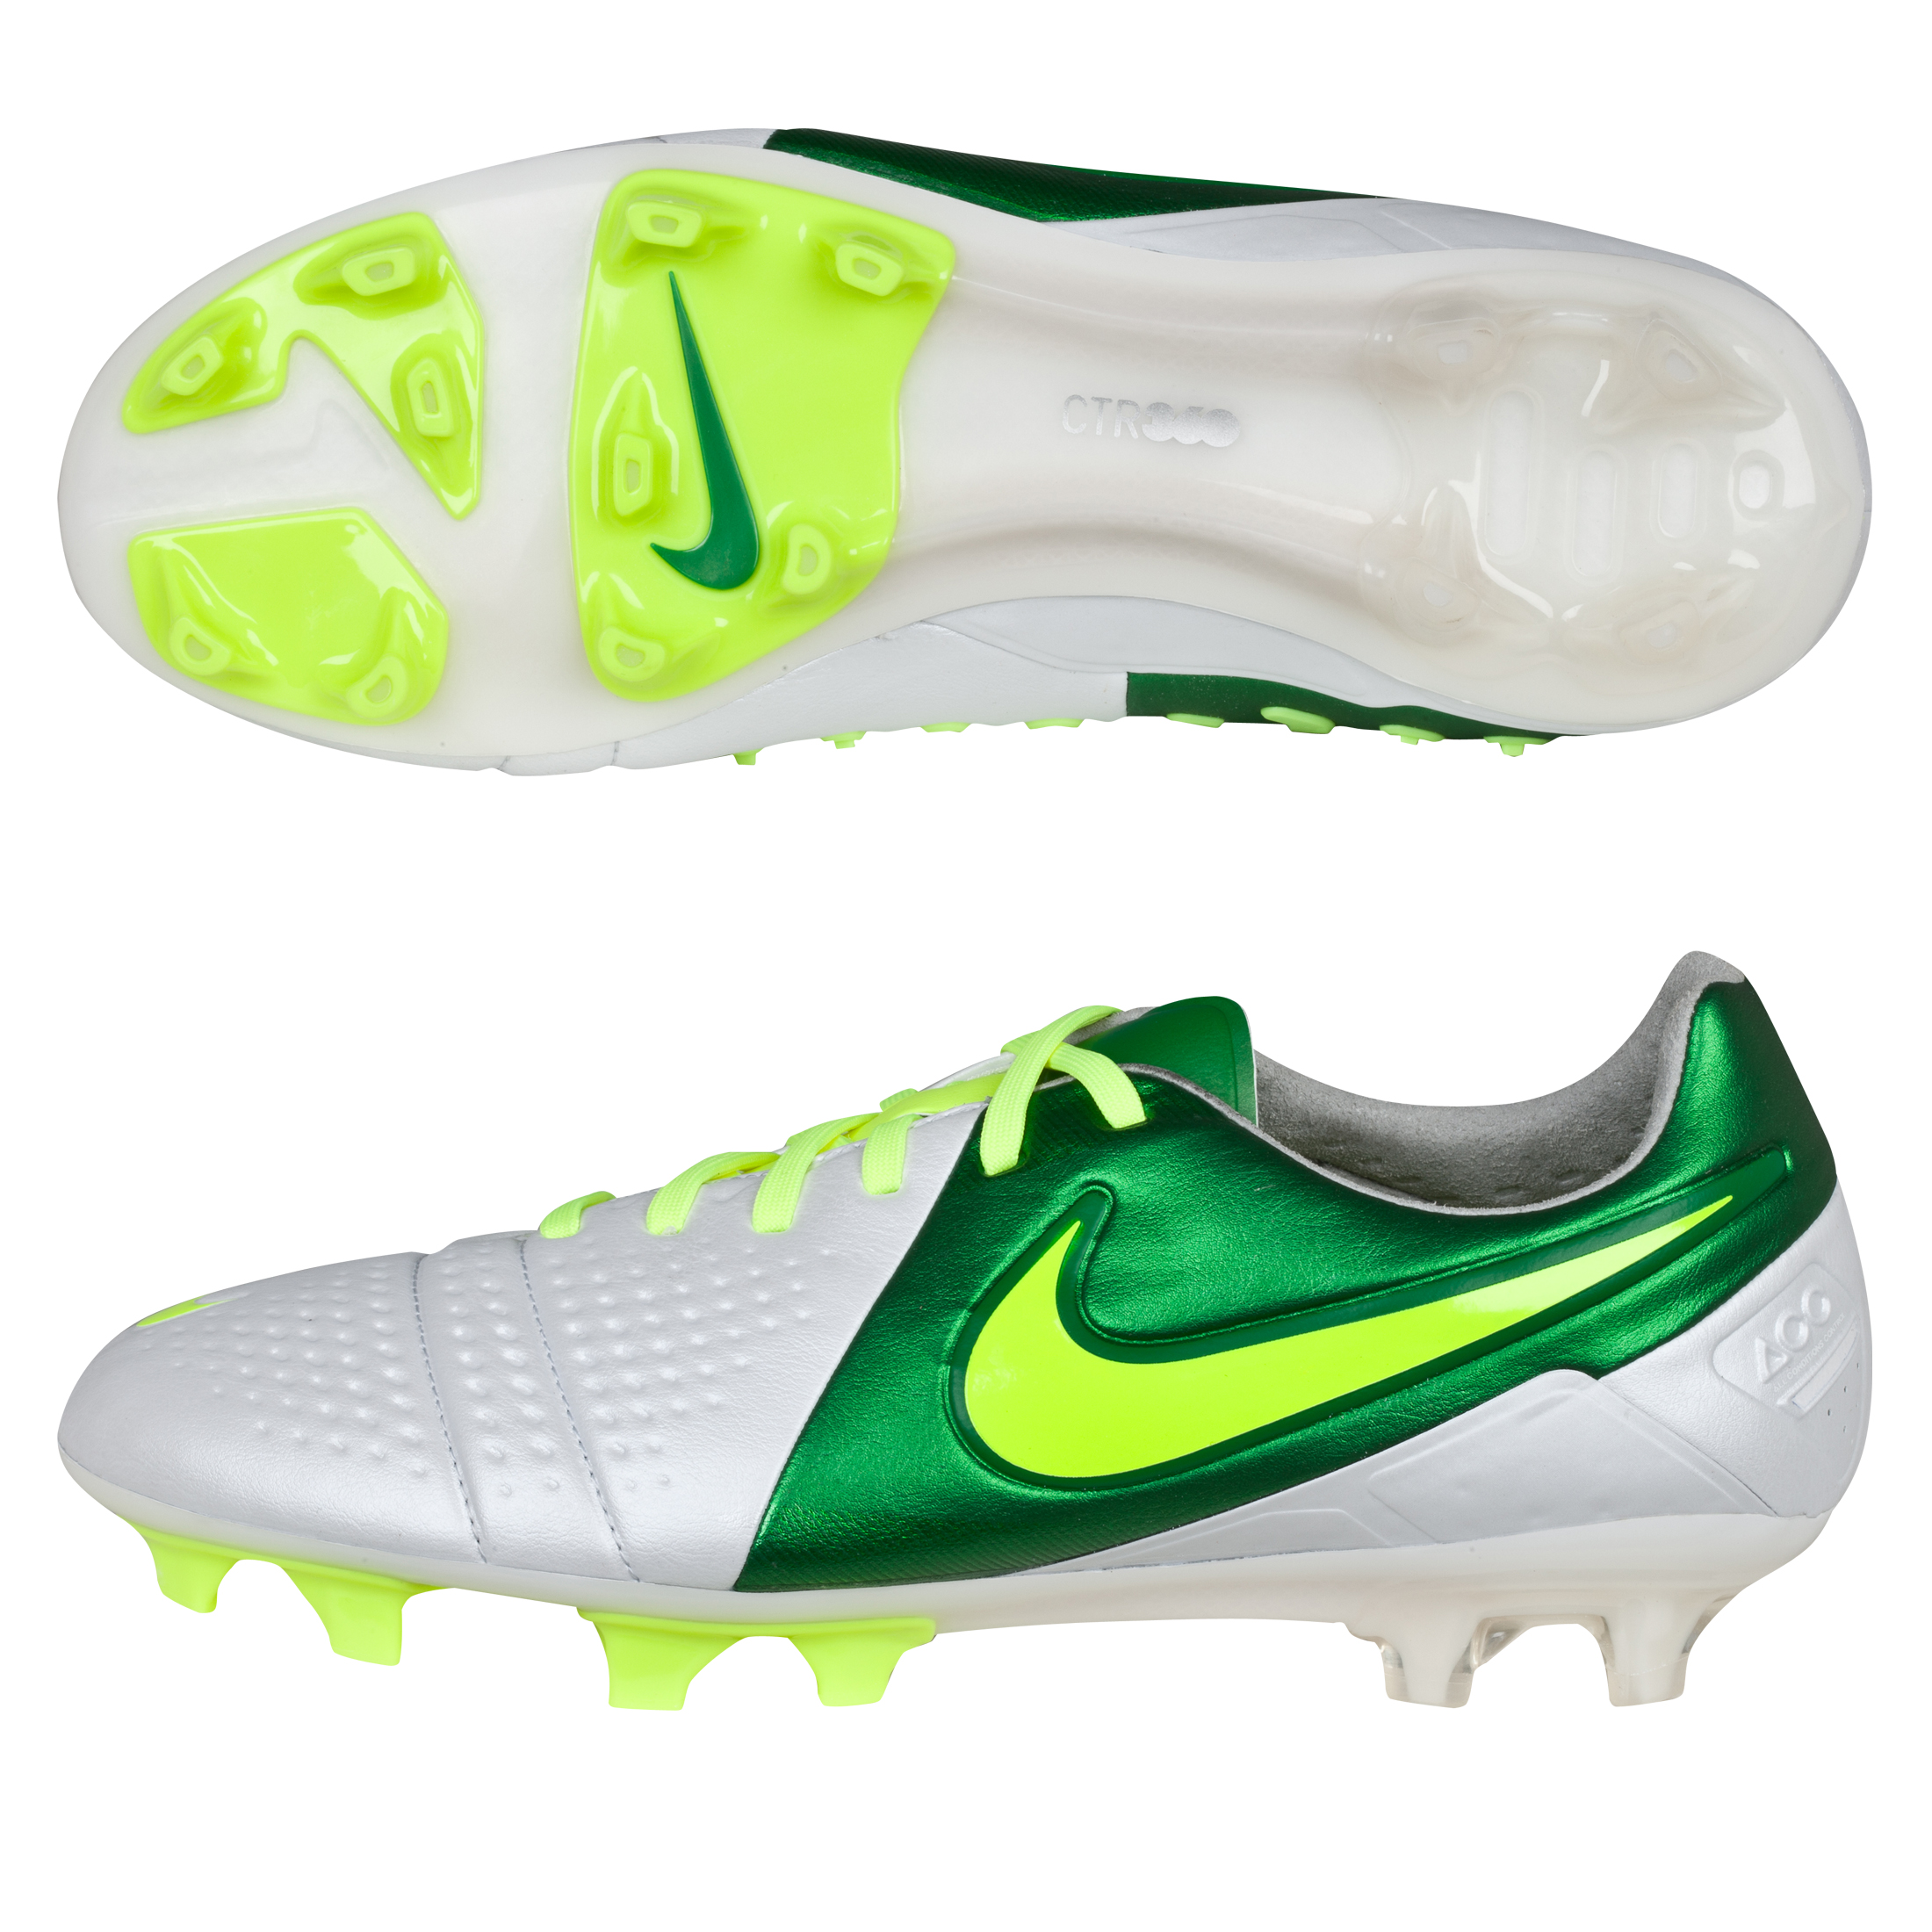 Nike CTR360 Maestri III Firm Ground Football Boots - White/Volt/Pine Green